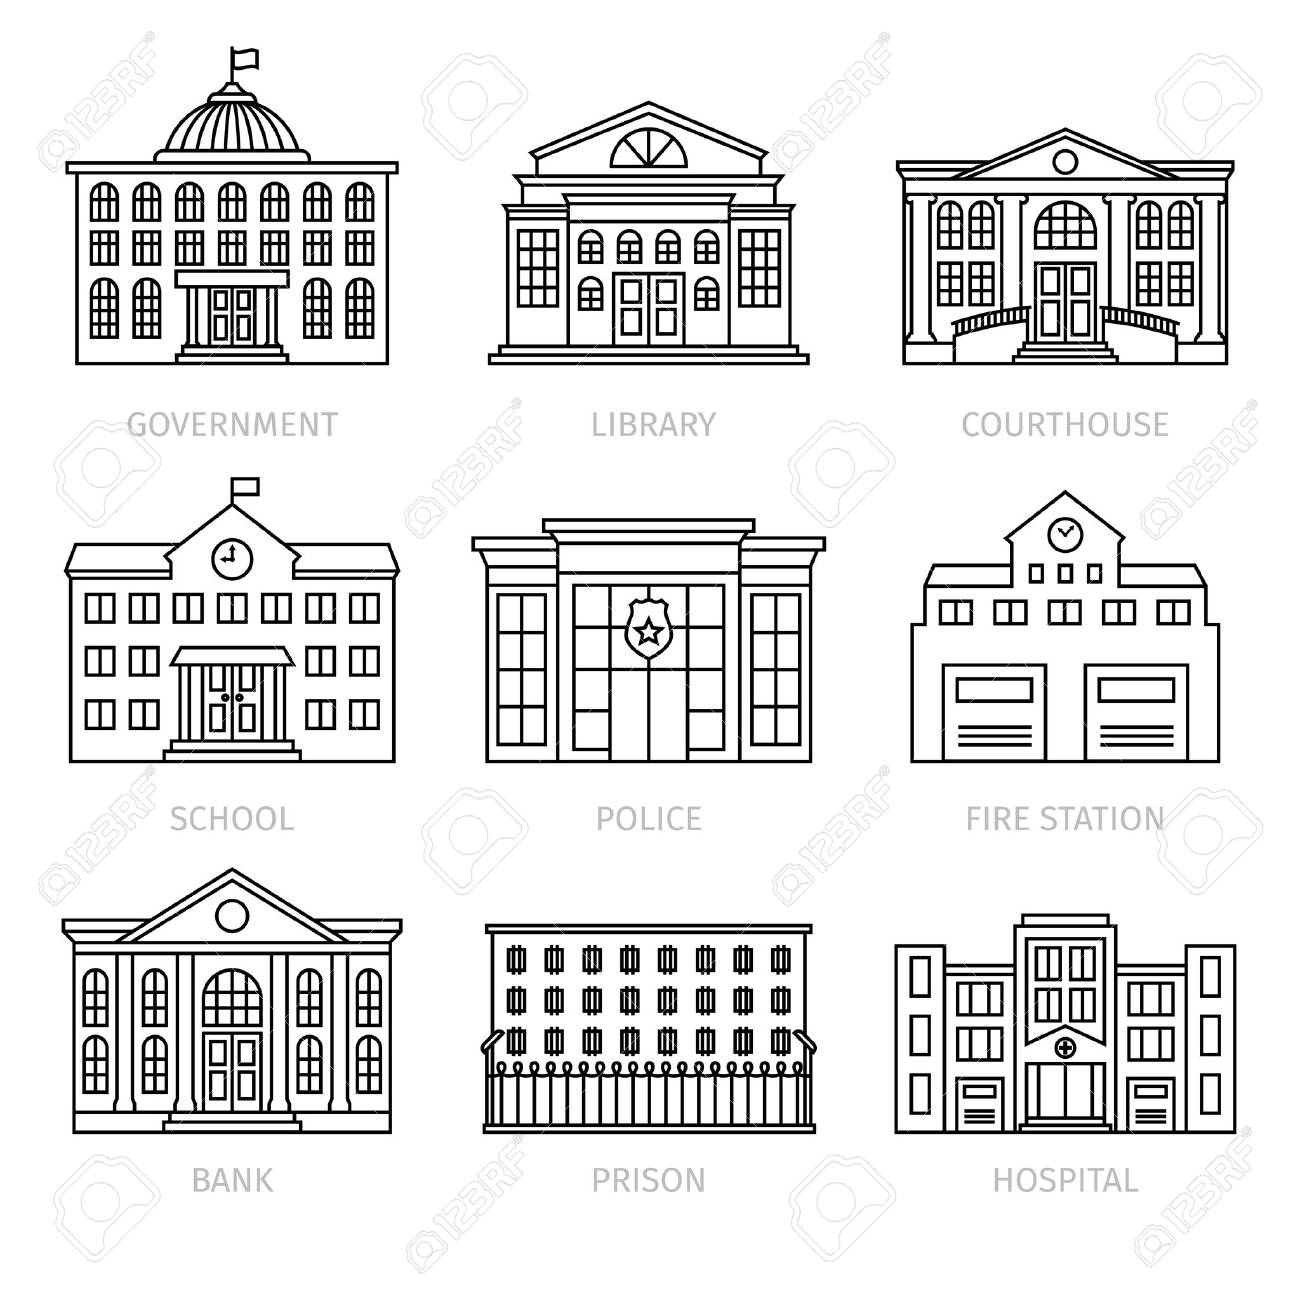 education and government buildings thin line icons.school, library